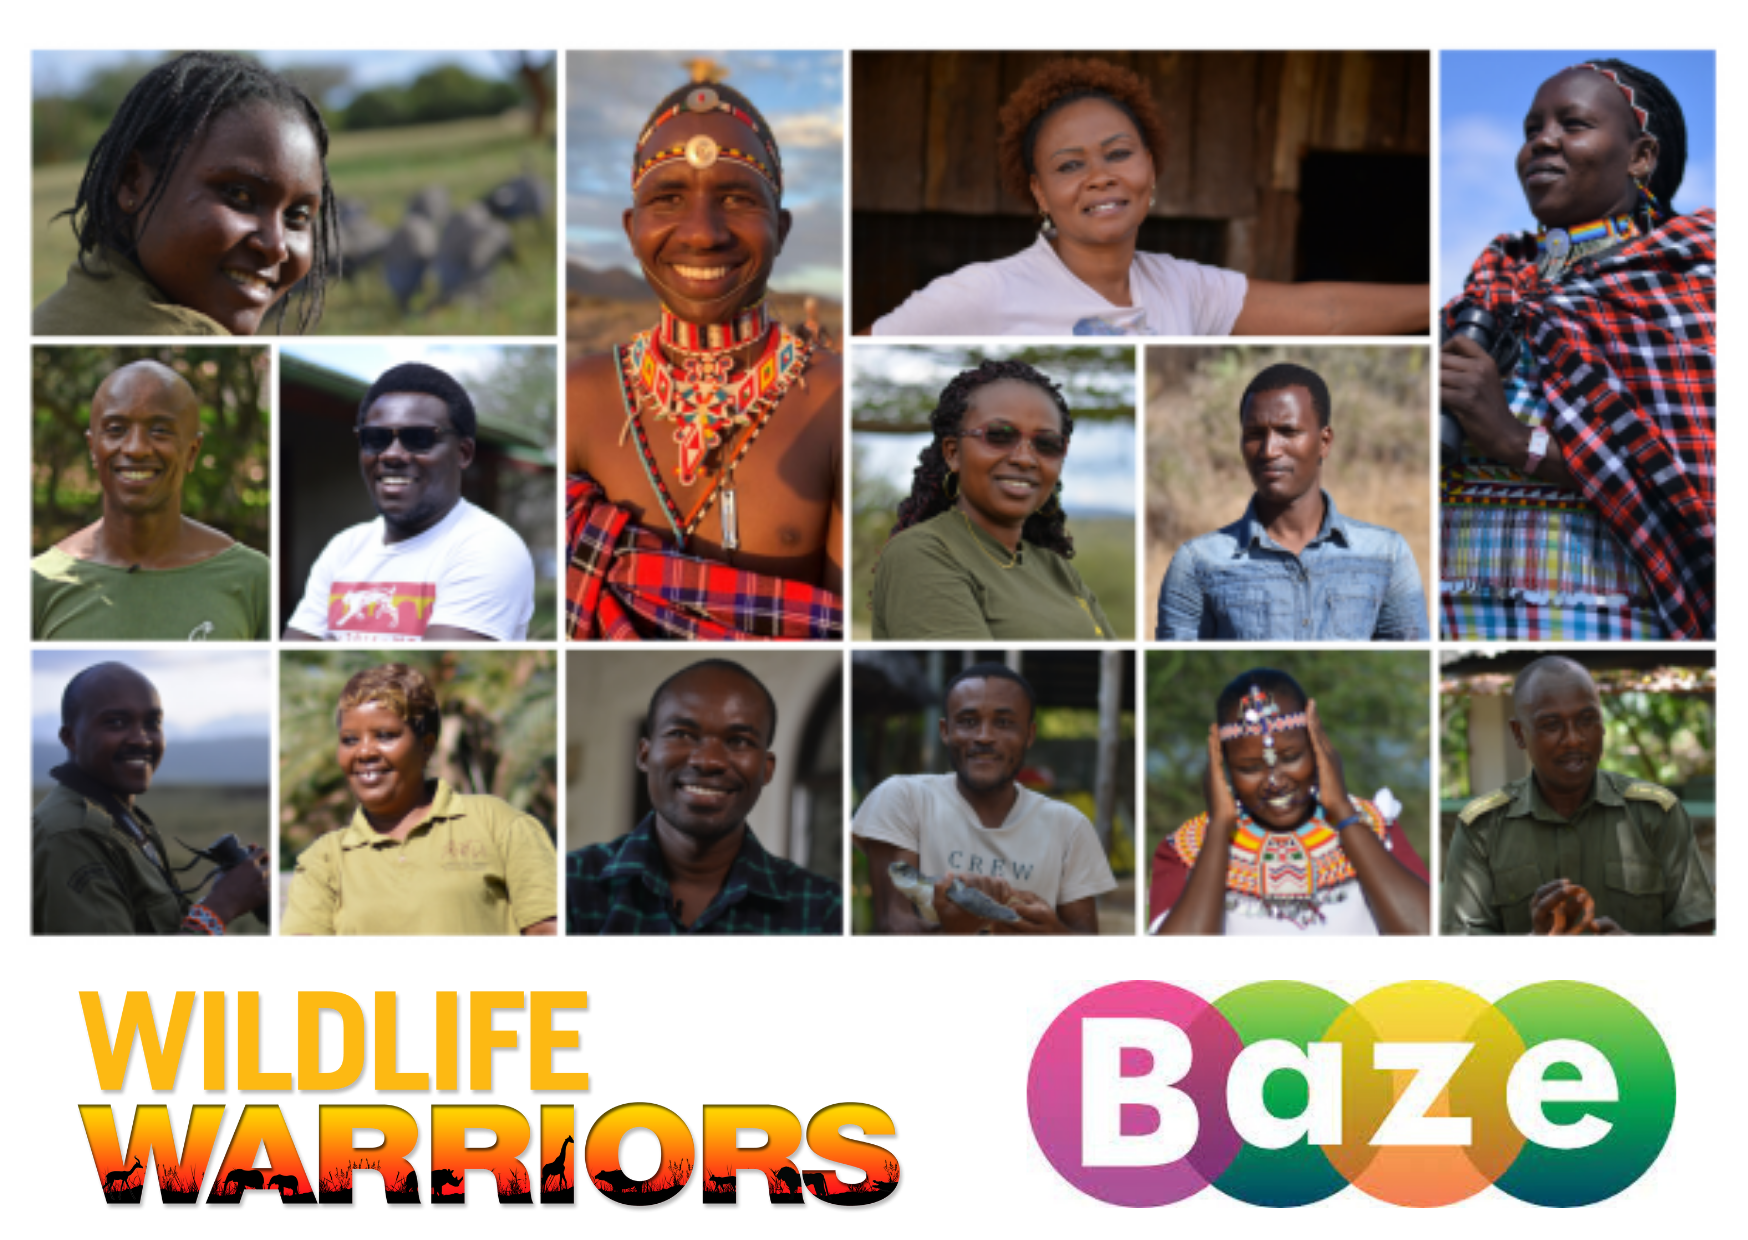 Watch Wildlife Warriors on Baze, the Mobile Video Powered by Safaricom